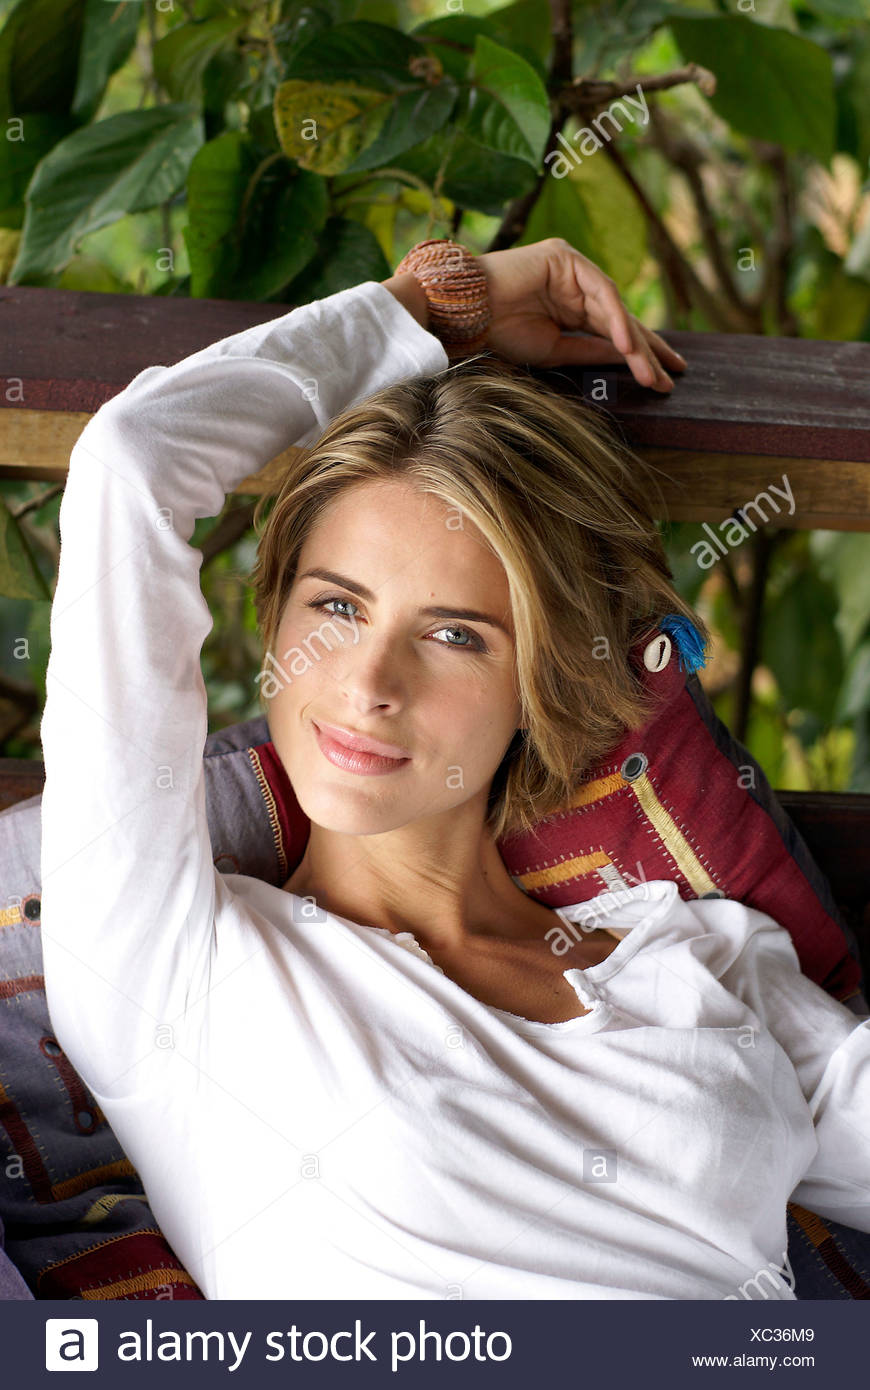 35a12412c3f3e Female with short dark blonde hair with highlights wearing white long  sleeve top sitting relaxed on cushions outdoors